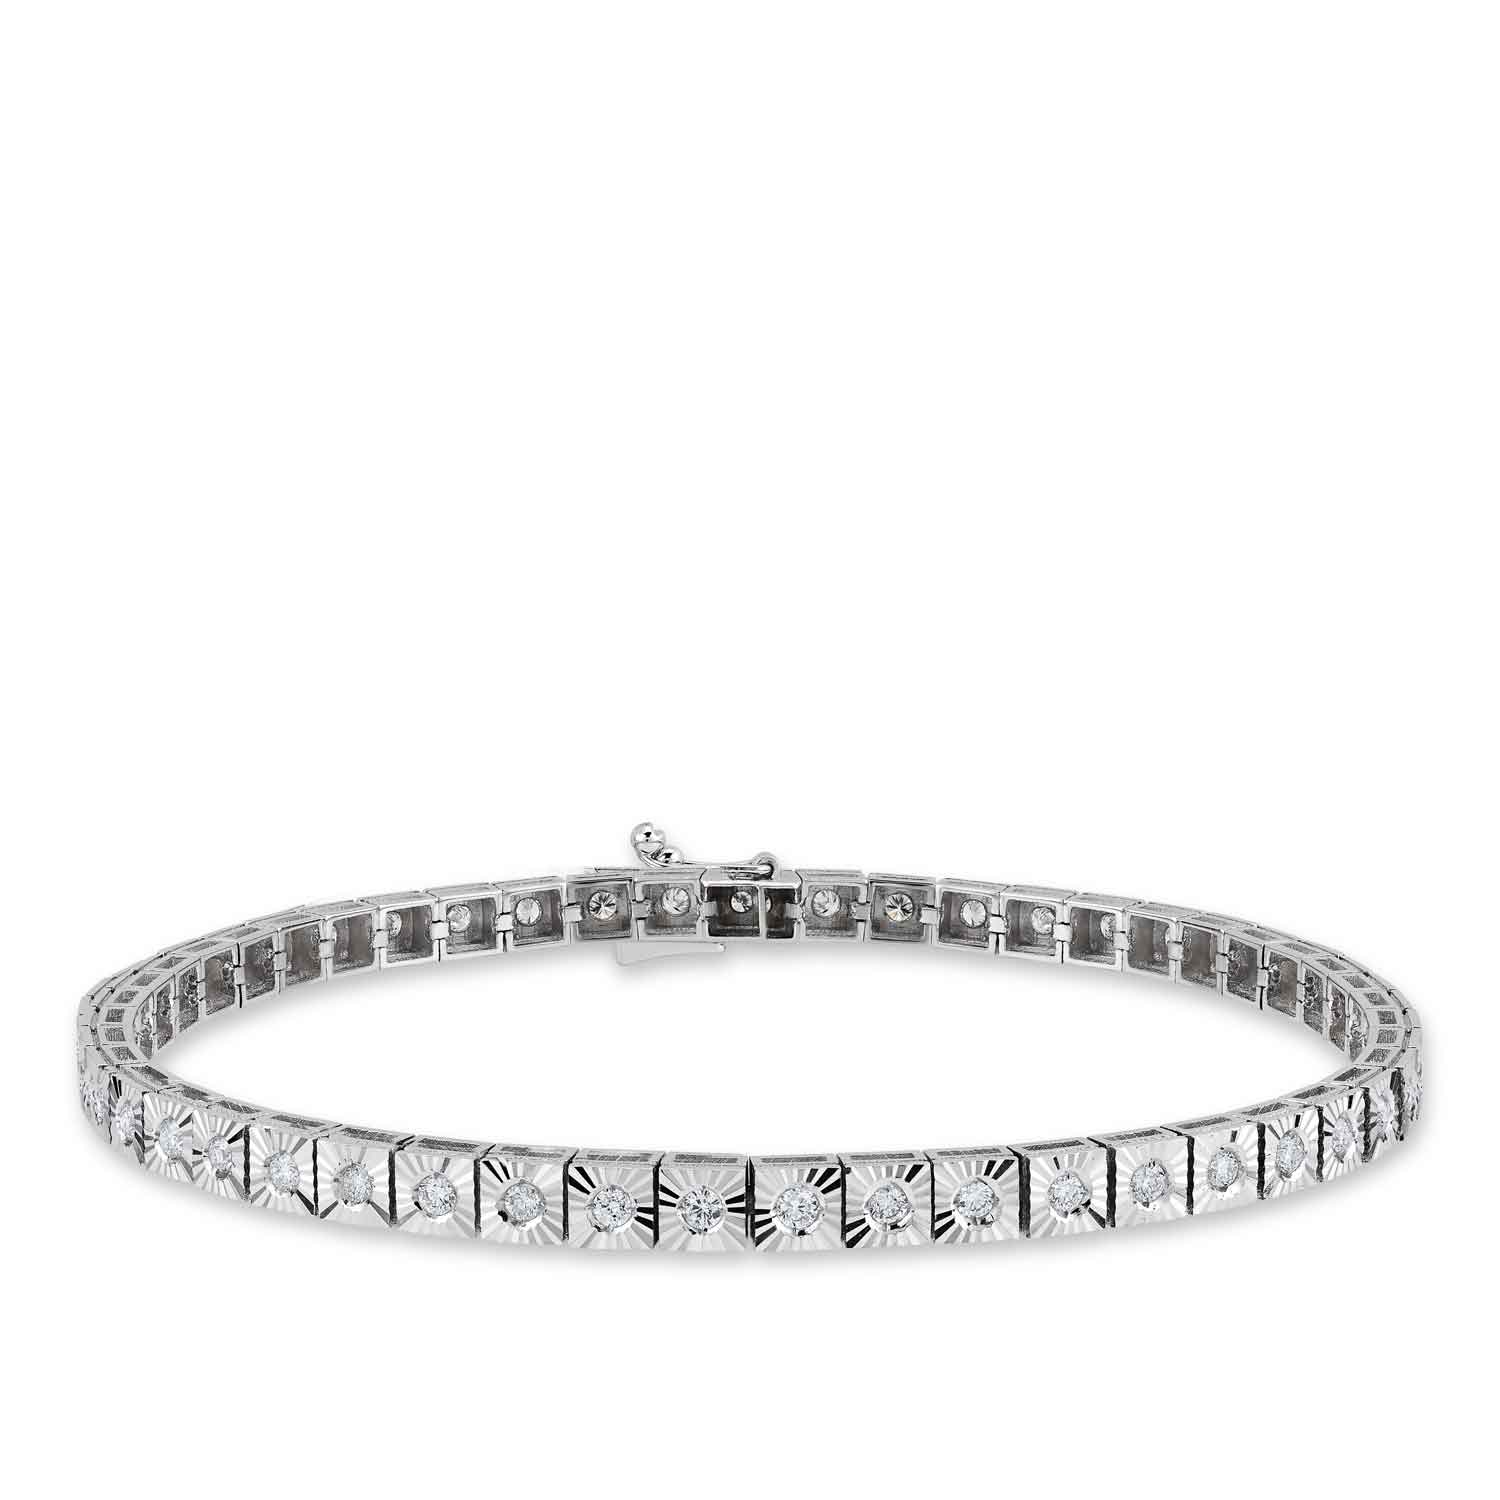 Diamond Waterway Bracelets Bracelet Diamond Tennis Bracelet Lizay Pirlanta